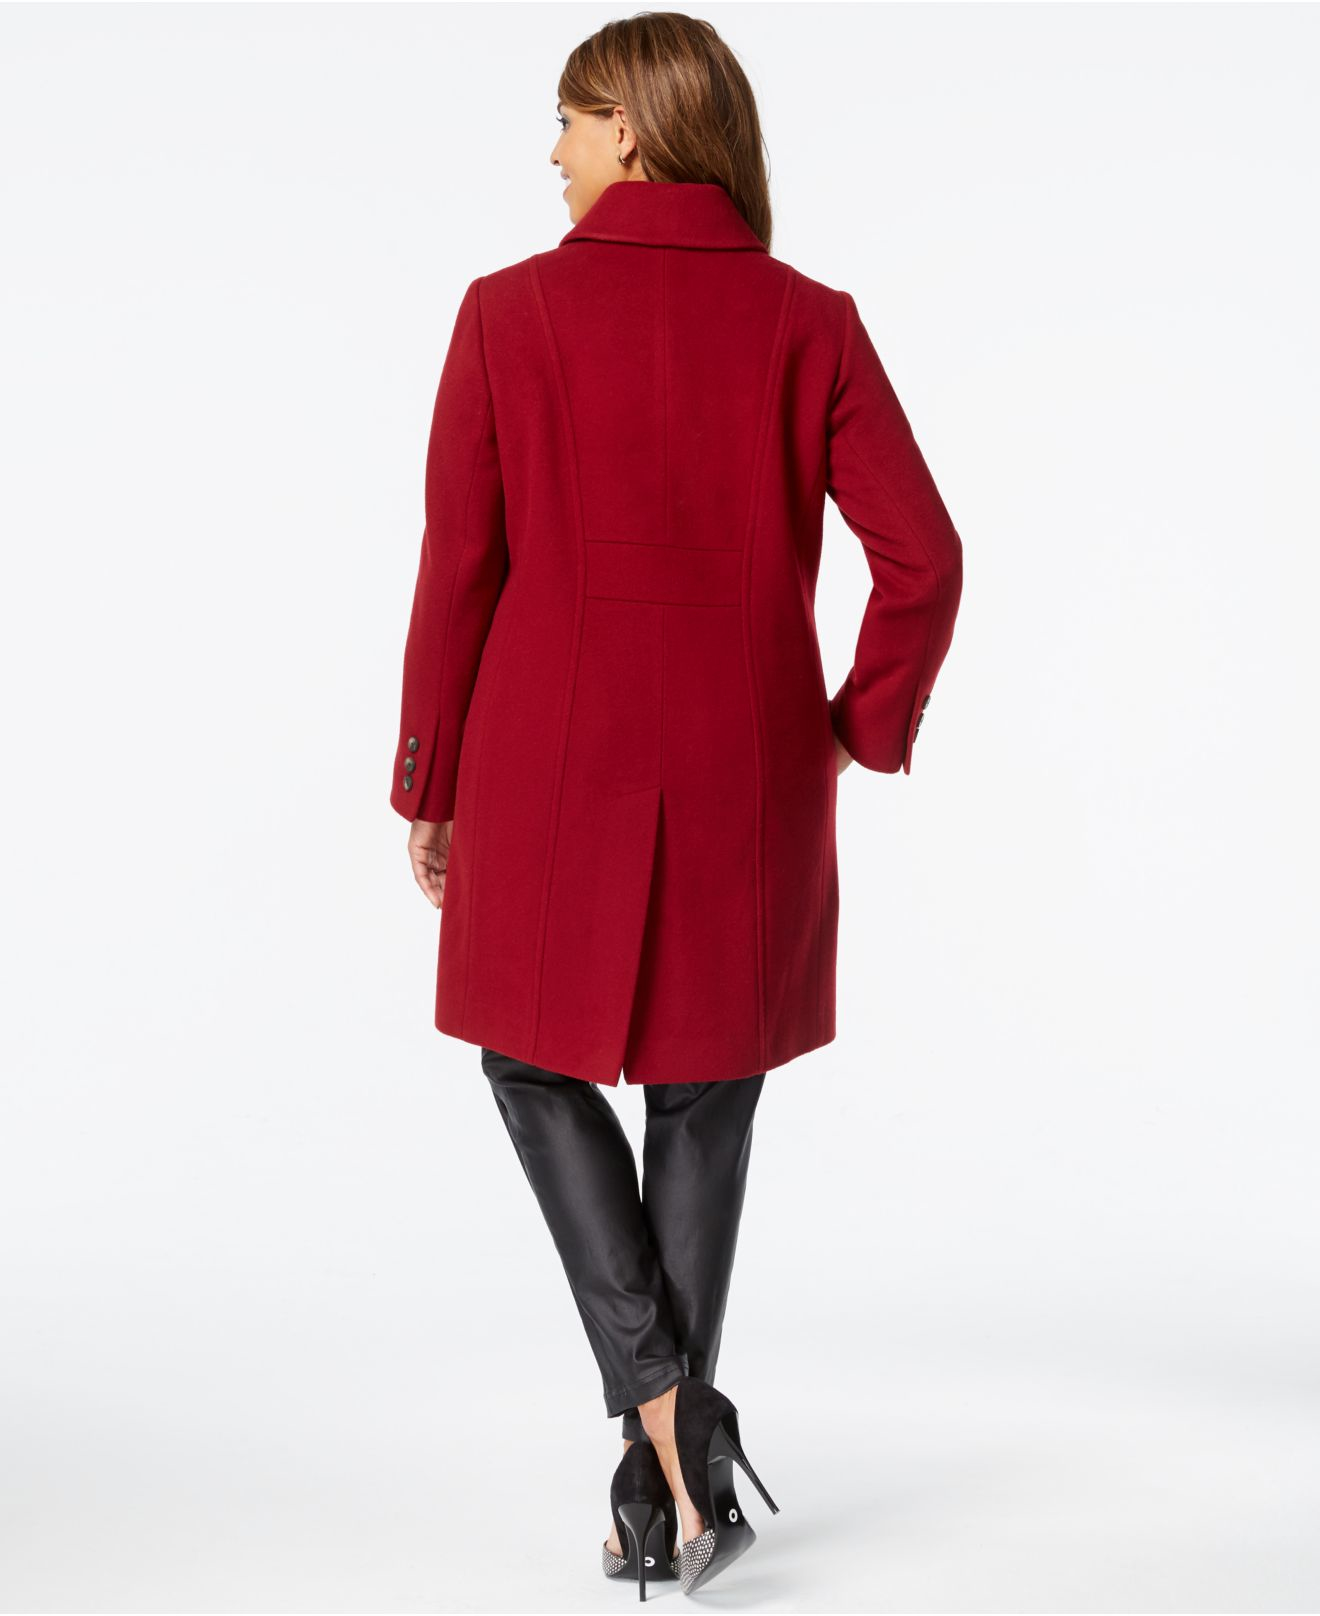 Make Dillard's your women's coats and jackets destination. Find the lastest women's outerwear from parkas, anoraks, and more at Dillards.